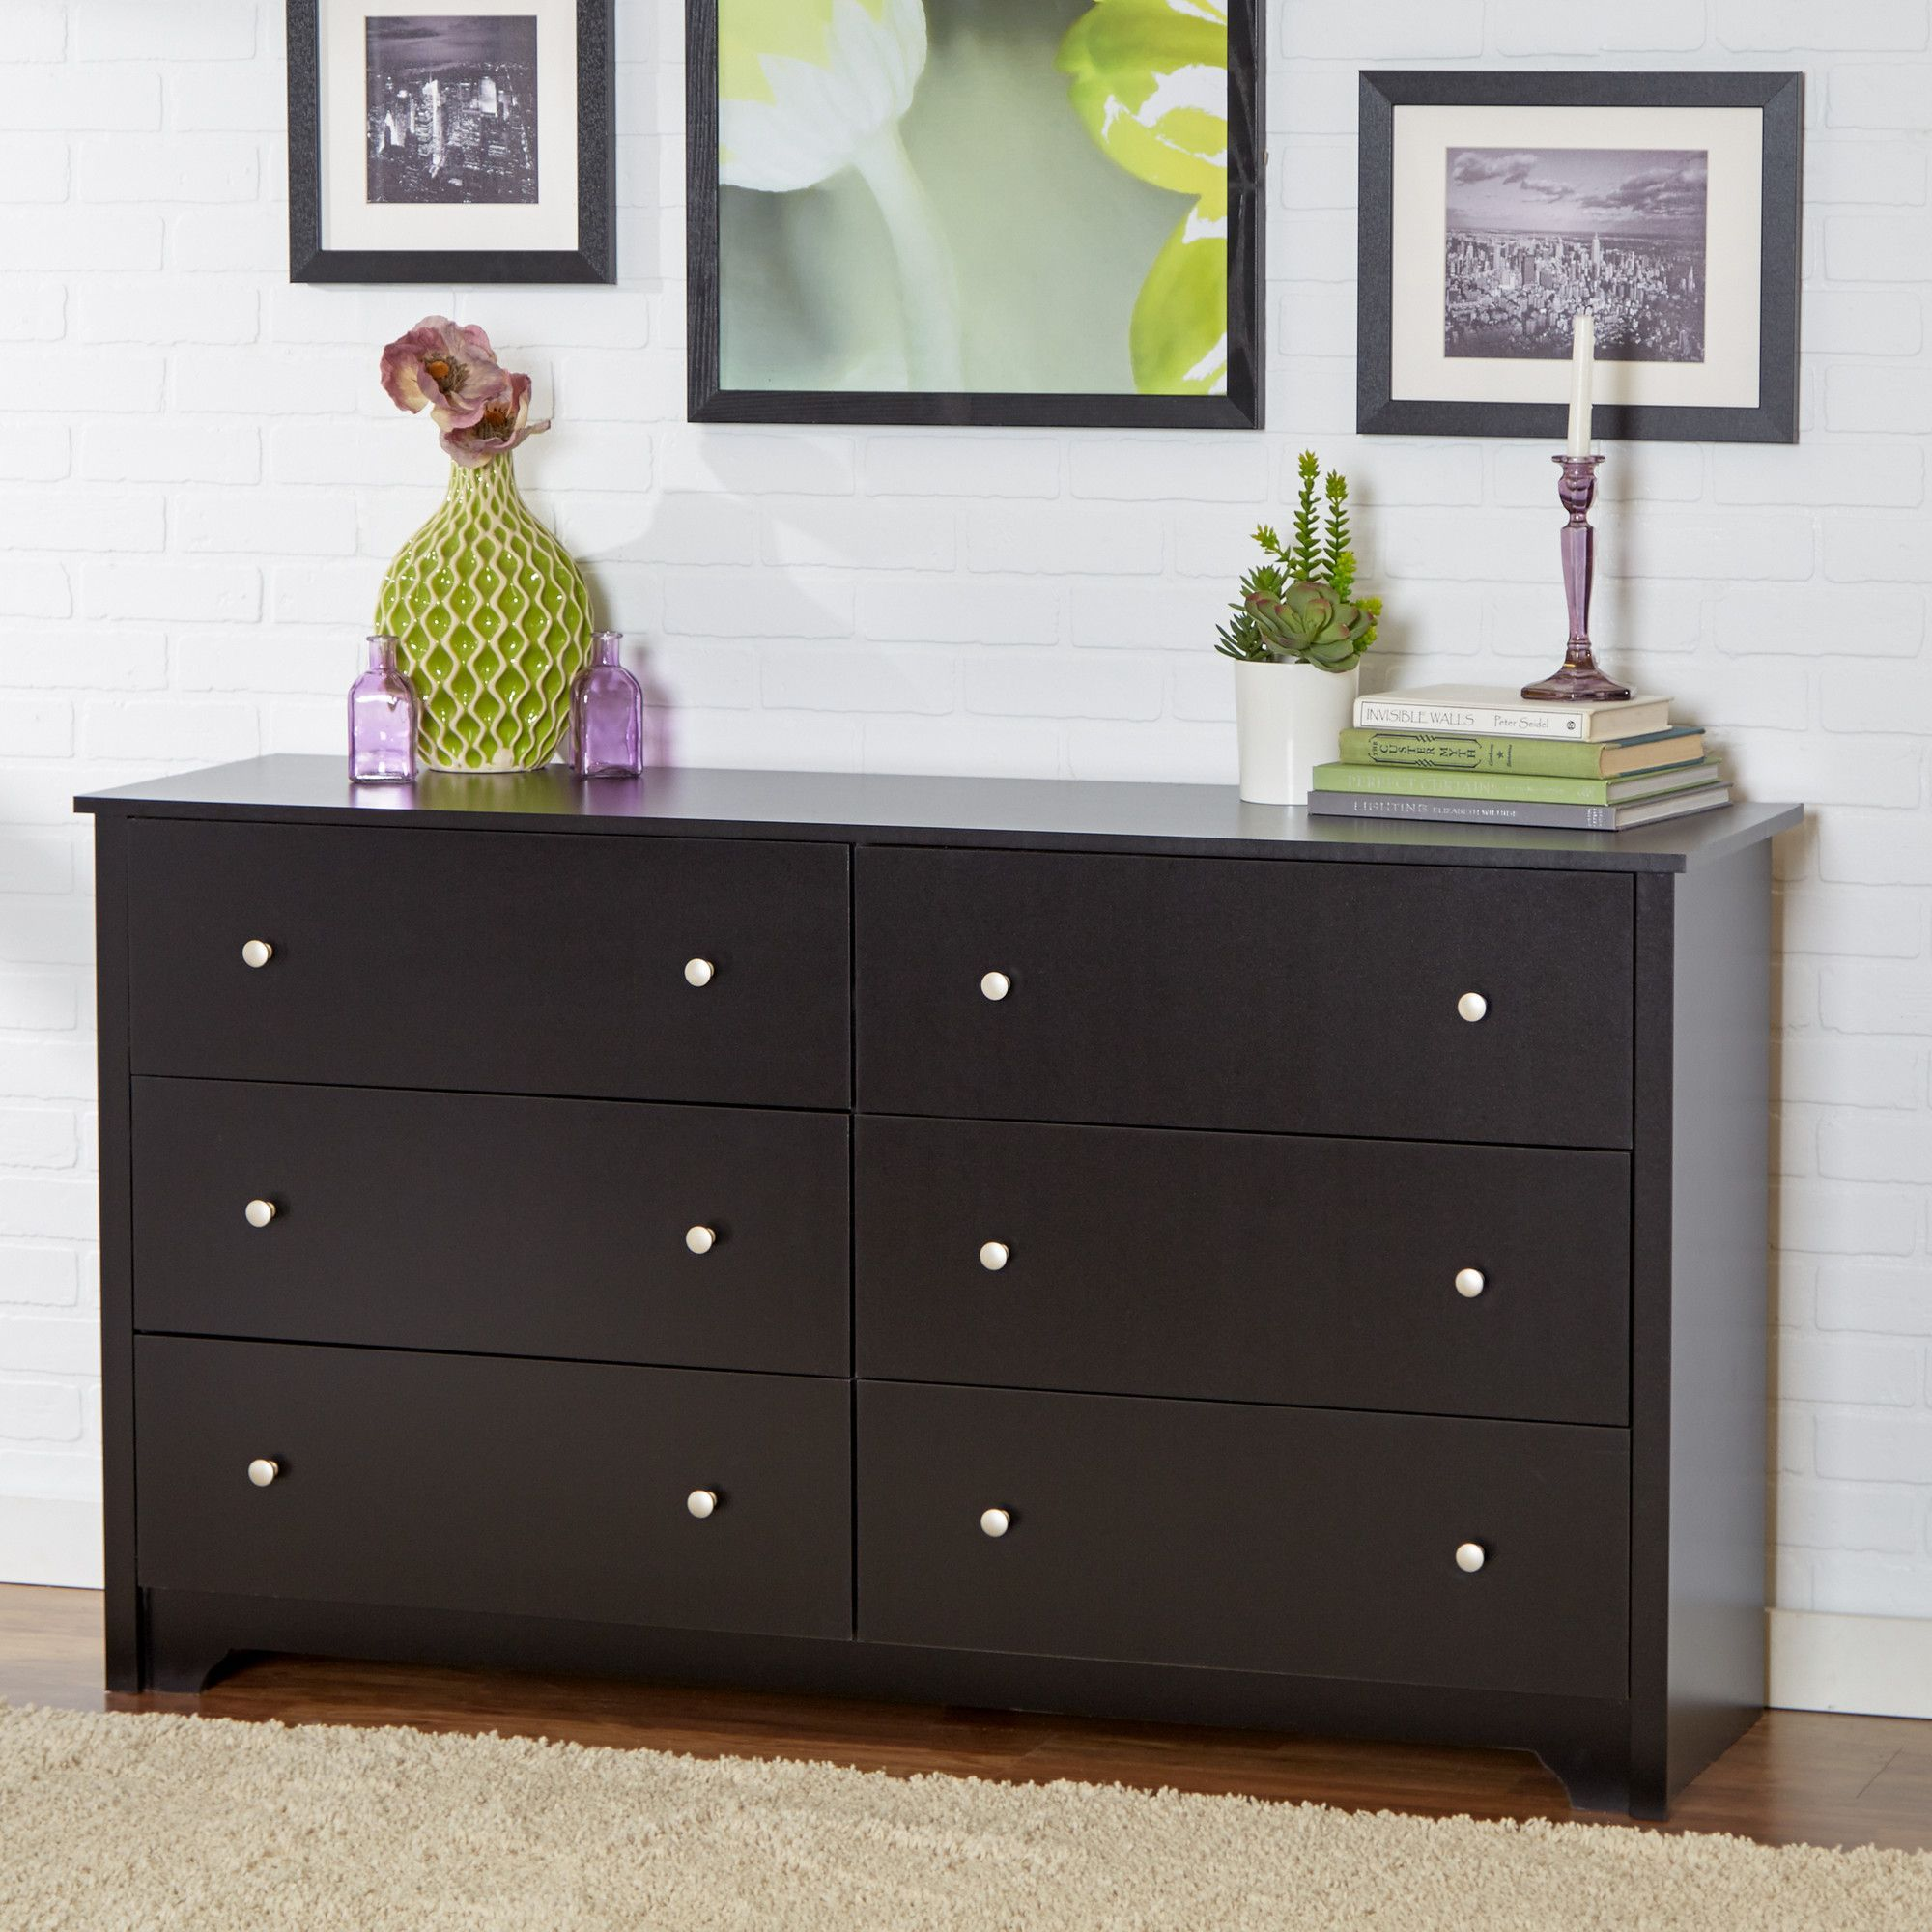 Ava 6 Drawer Double Dresser  Mdf Pintado  Pinterest  Double Inspiration Bedroom Dressers Review